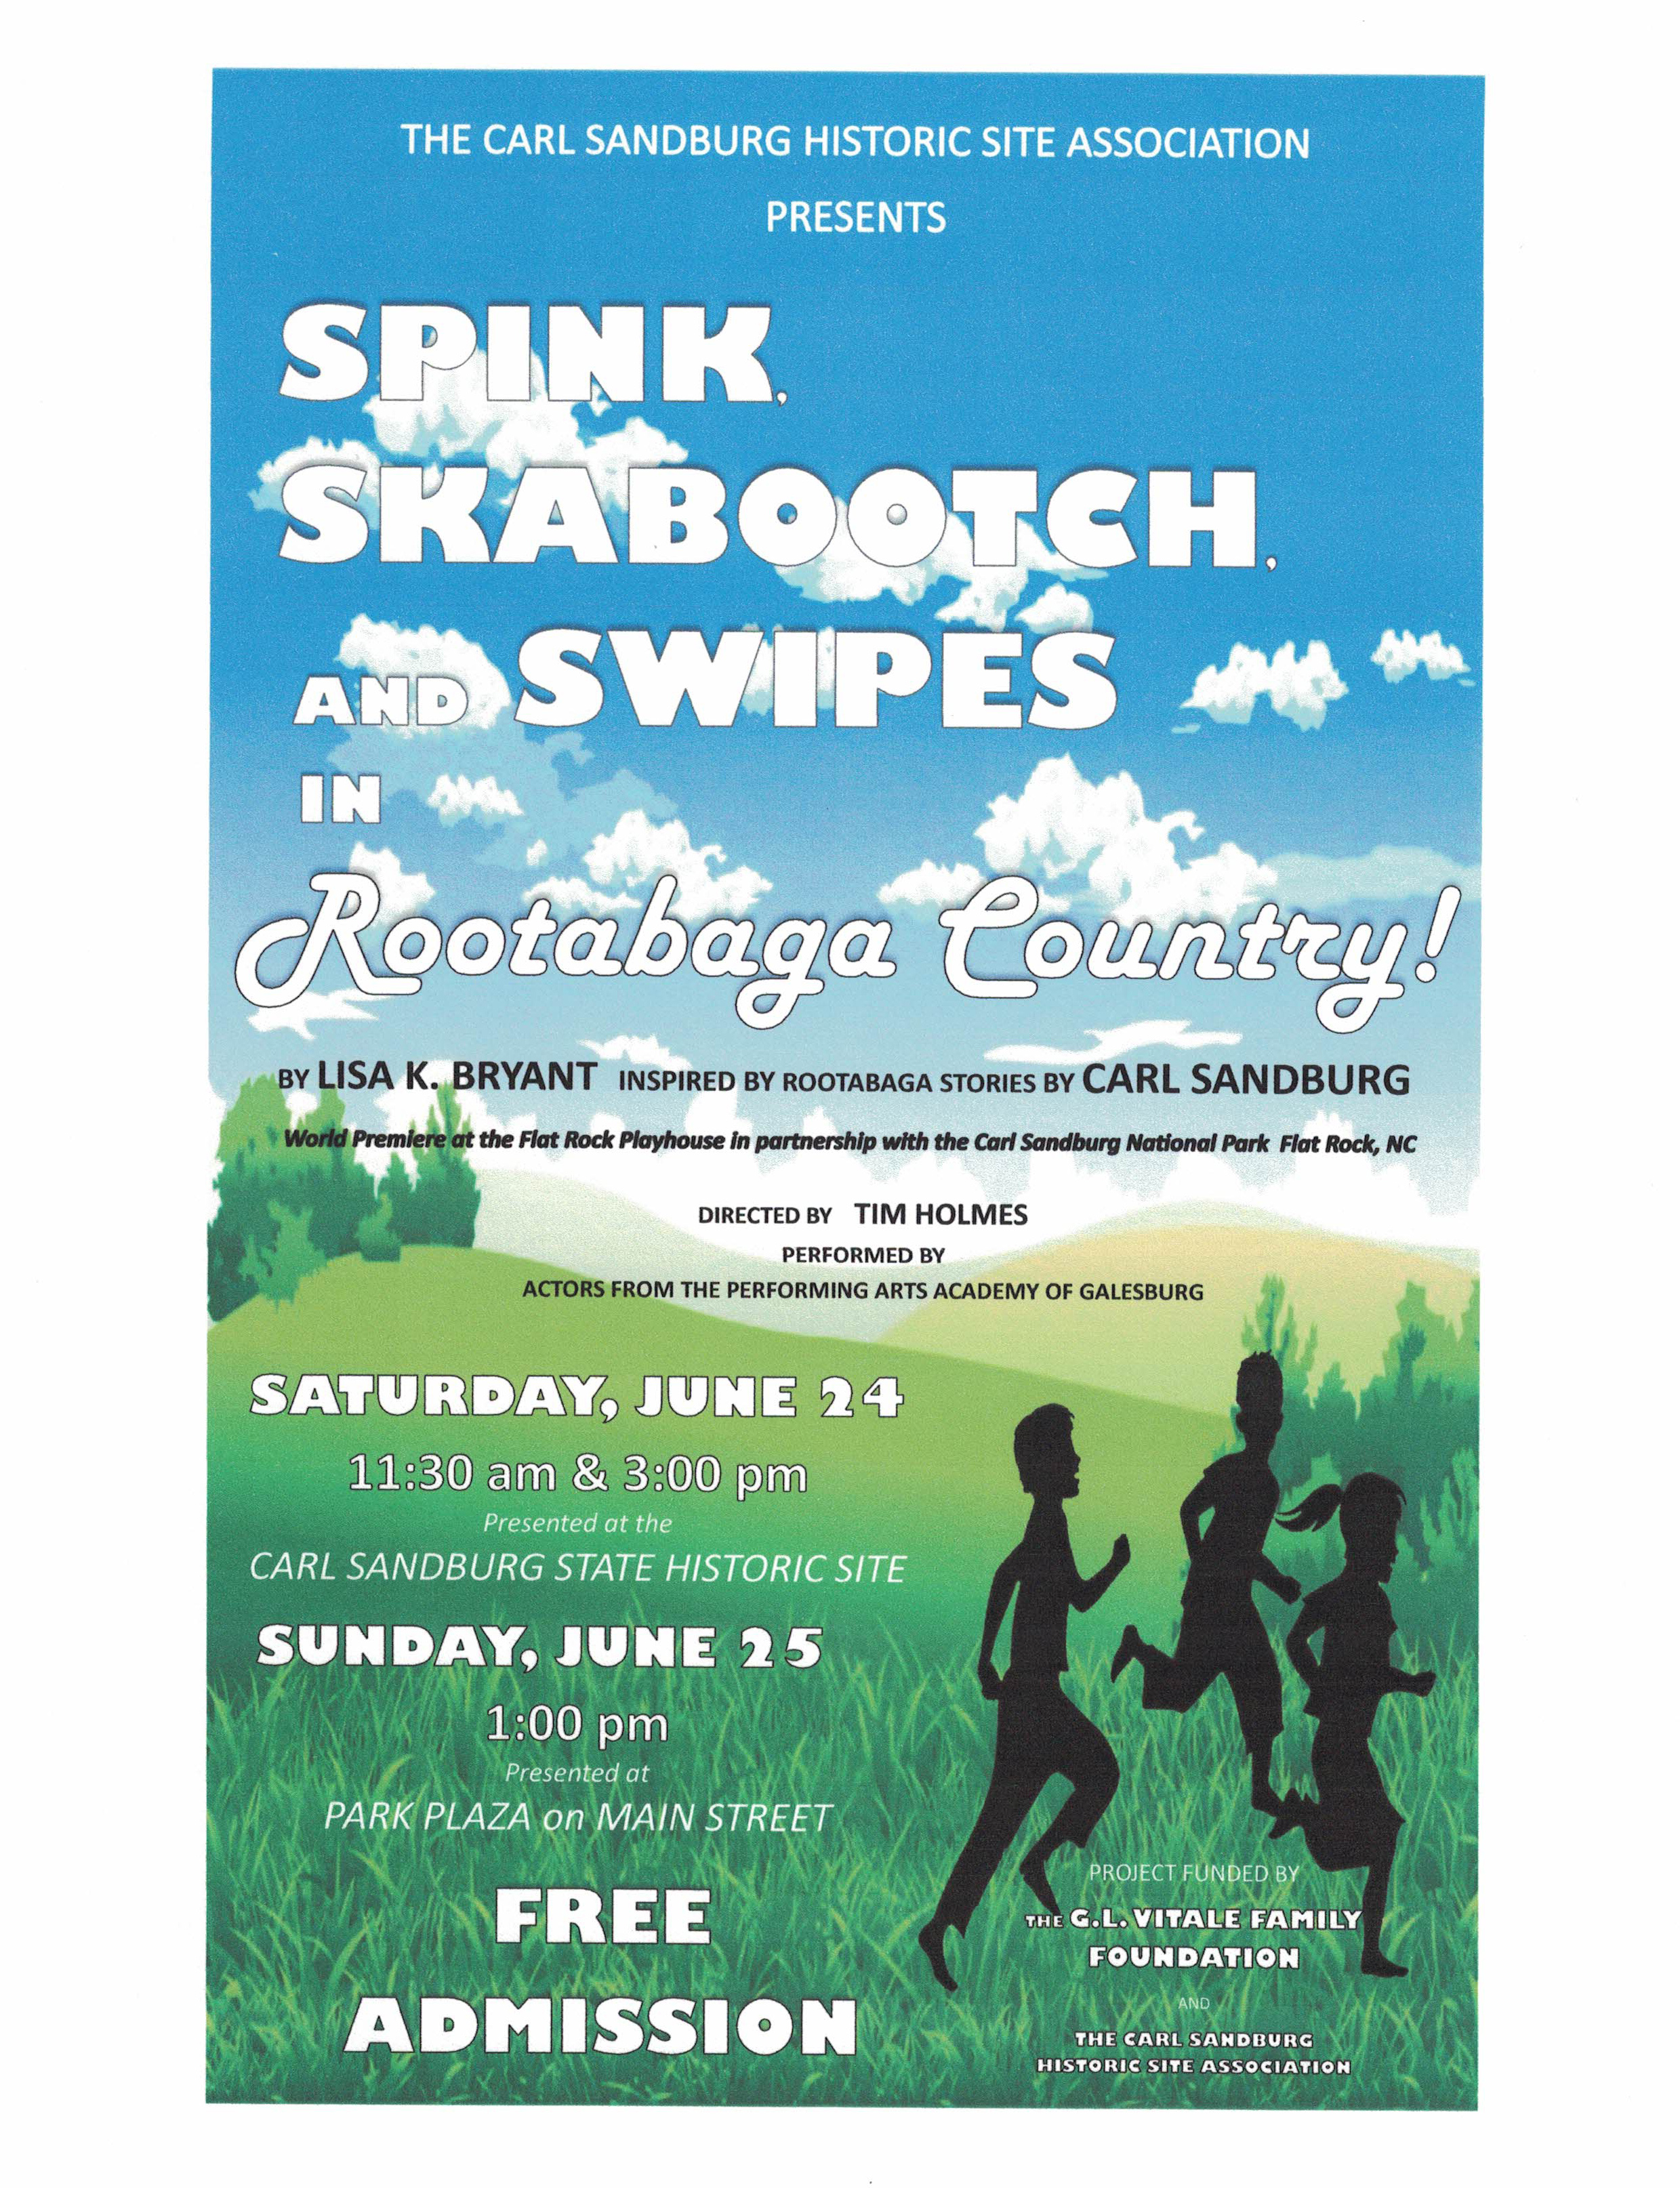 Spink, Skabootch, & Spinks in Rootabaga Country - Carl Sandburg Theater Troupe Performances - June 24-25 - Galesburg